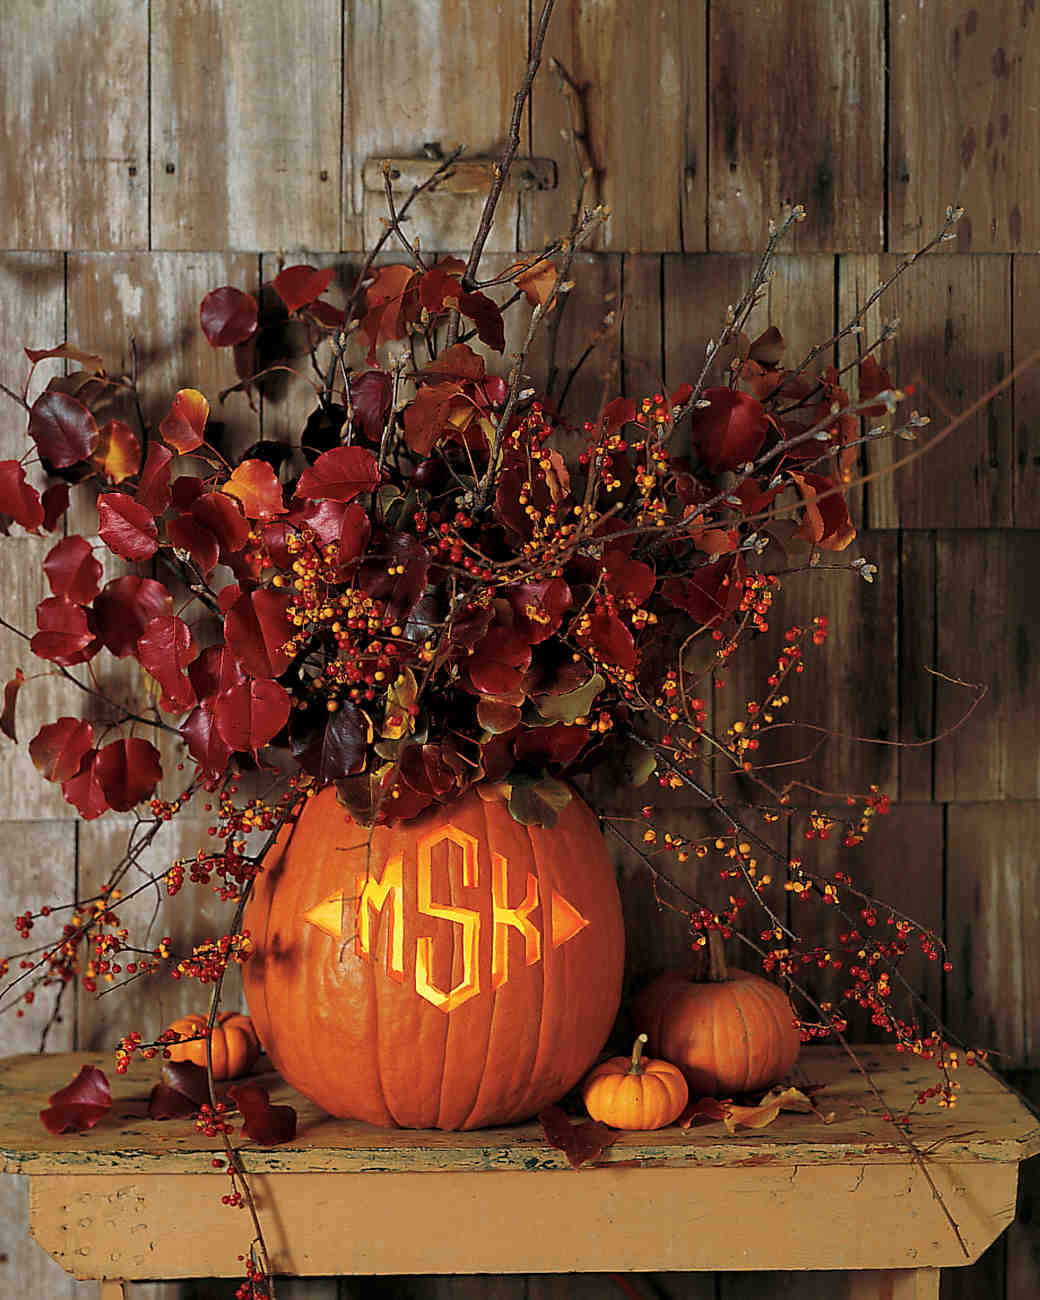 Pumpkin Vase with Monogram Carving